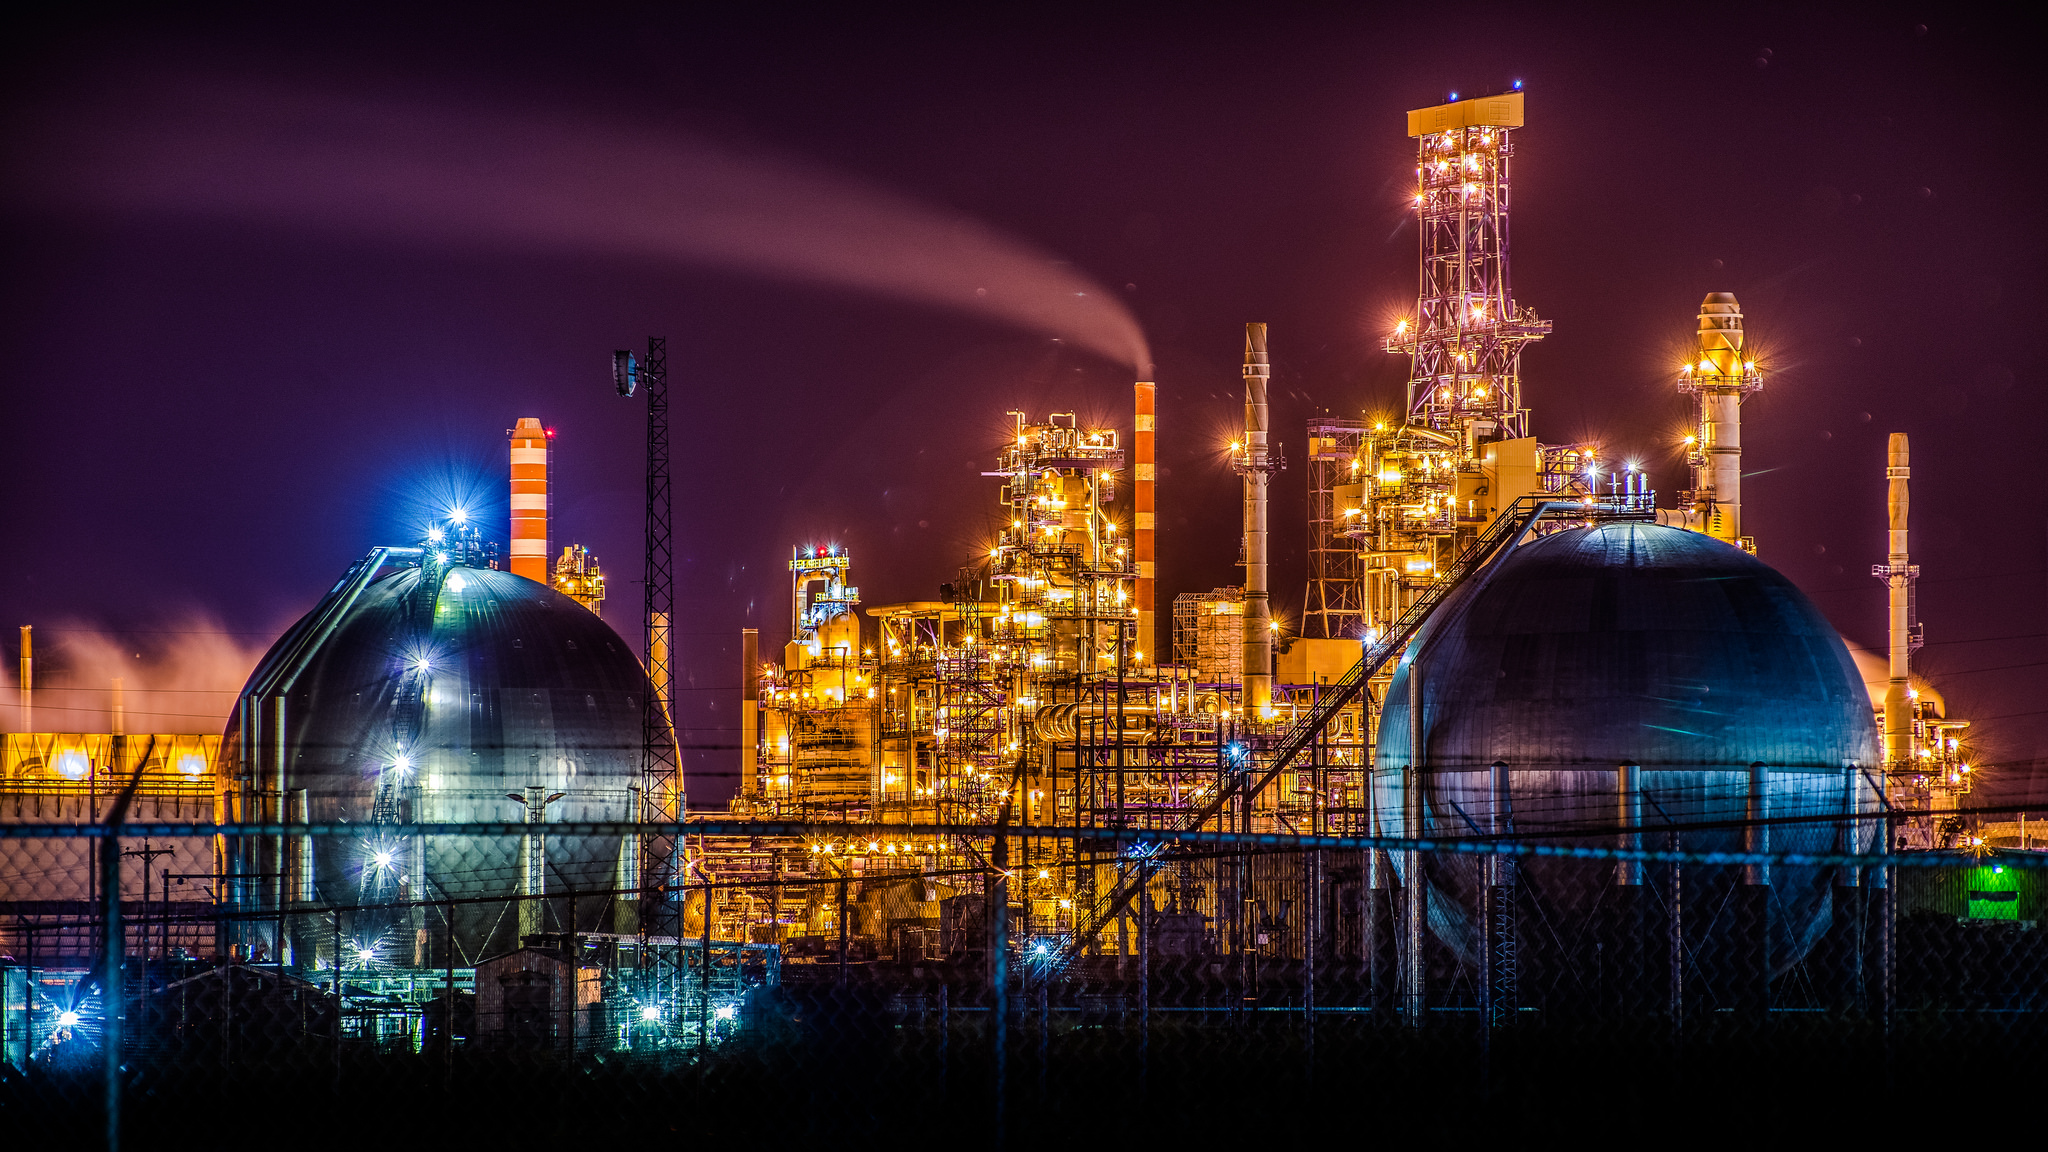 Industrial H2 Consumers - Refineries, ammonia plants or chemical plants, who are seeking new solutions that can deliver large-scale, green H2 at costs on par or better than incumbents.